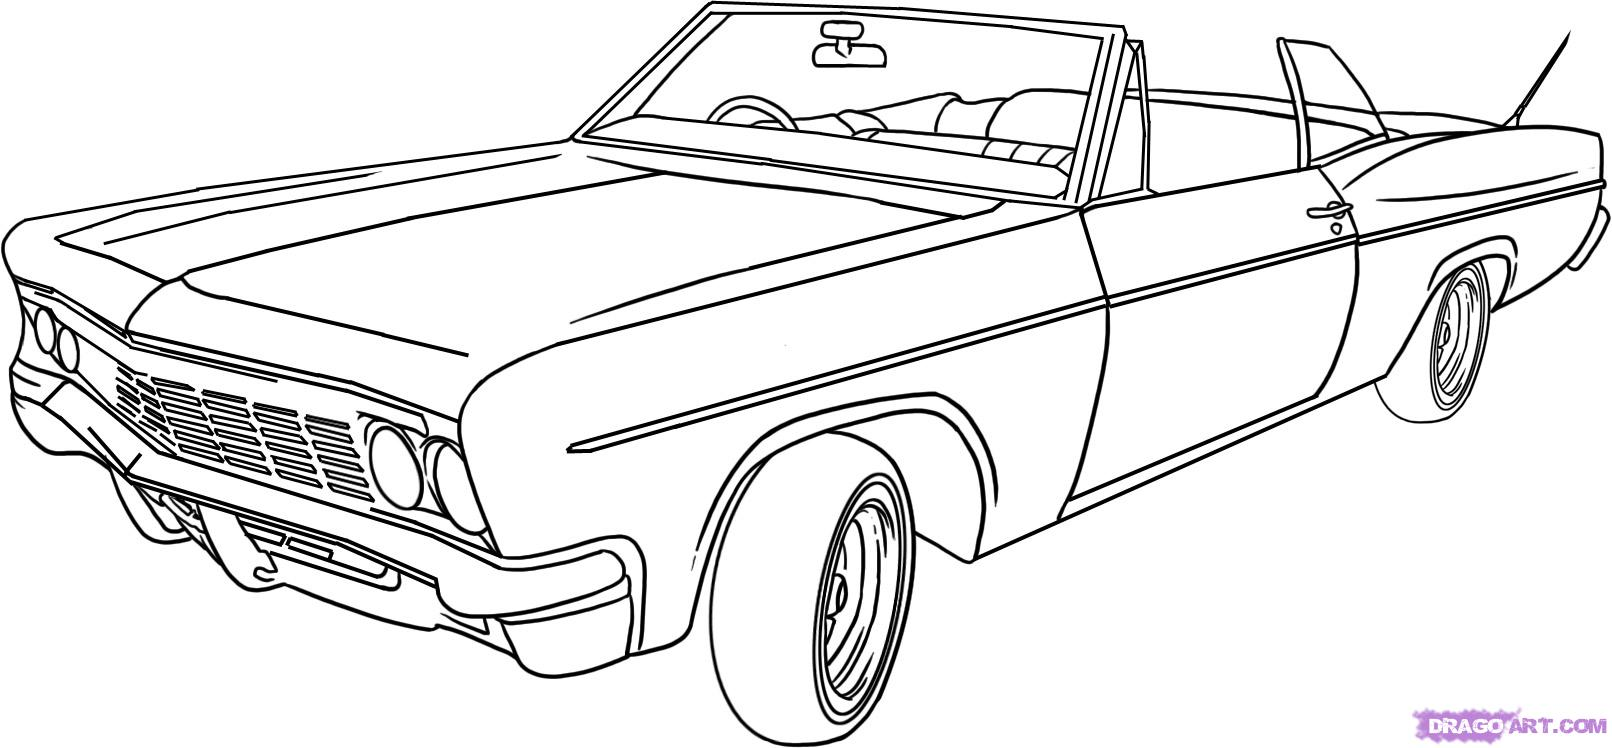 1612x748 Lowrider Coloring Pages Bestofcoloring Com Best